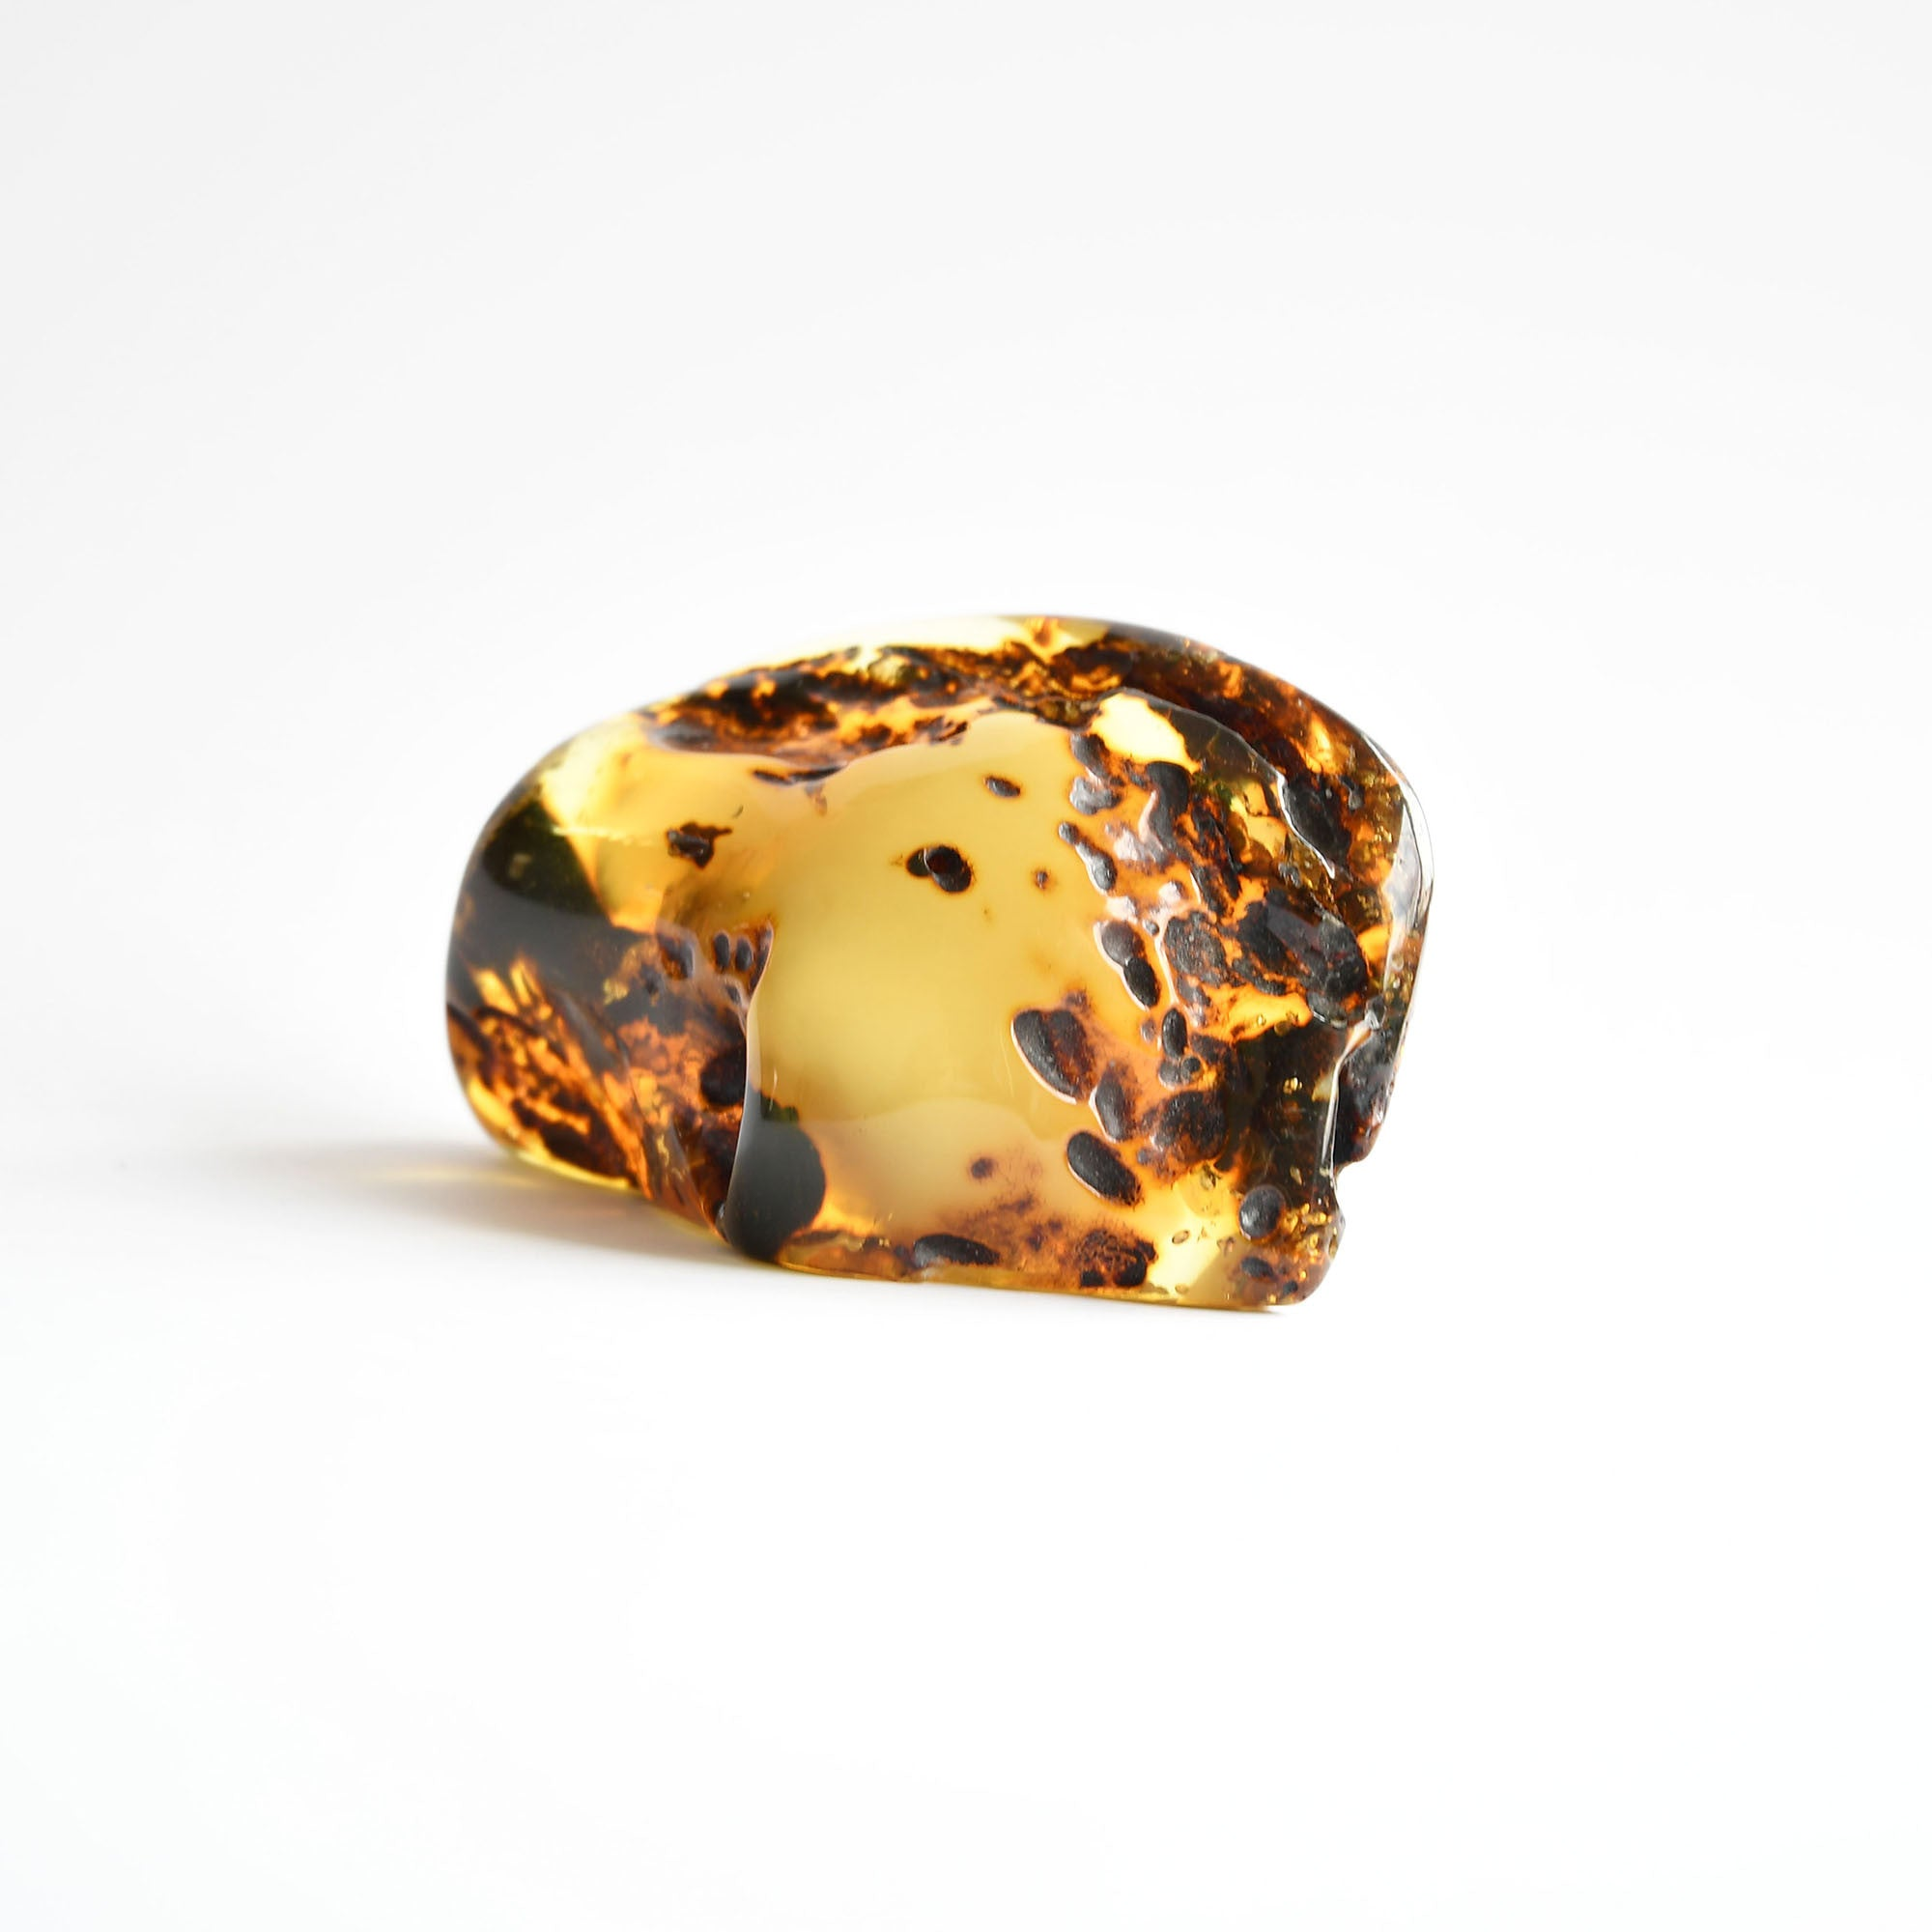 Transparent amber with green pattern